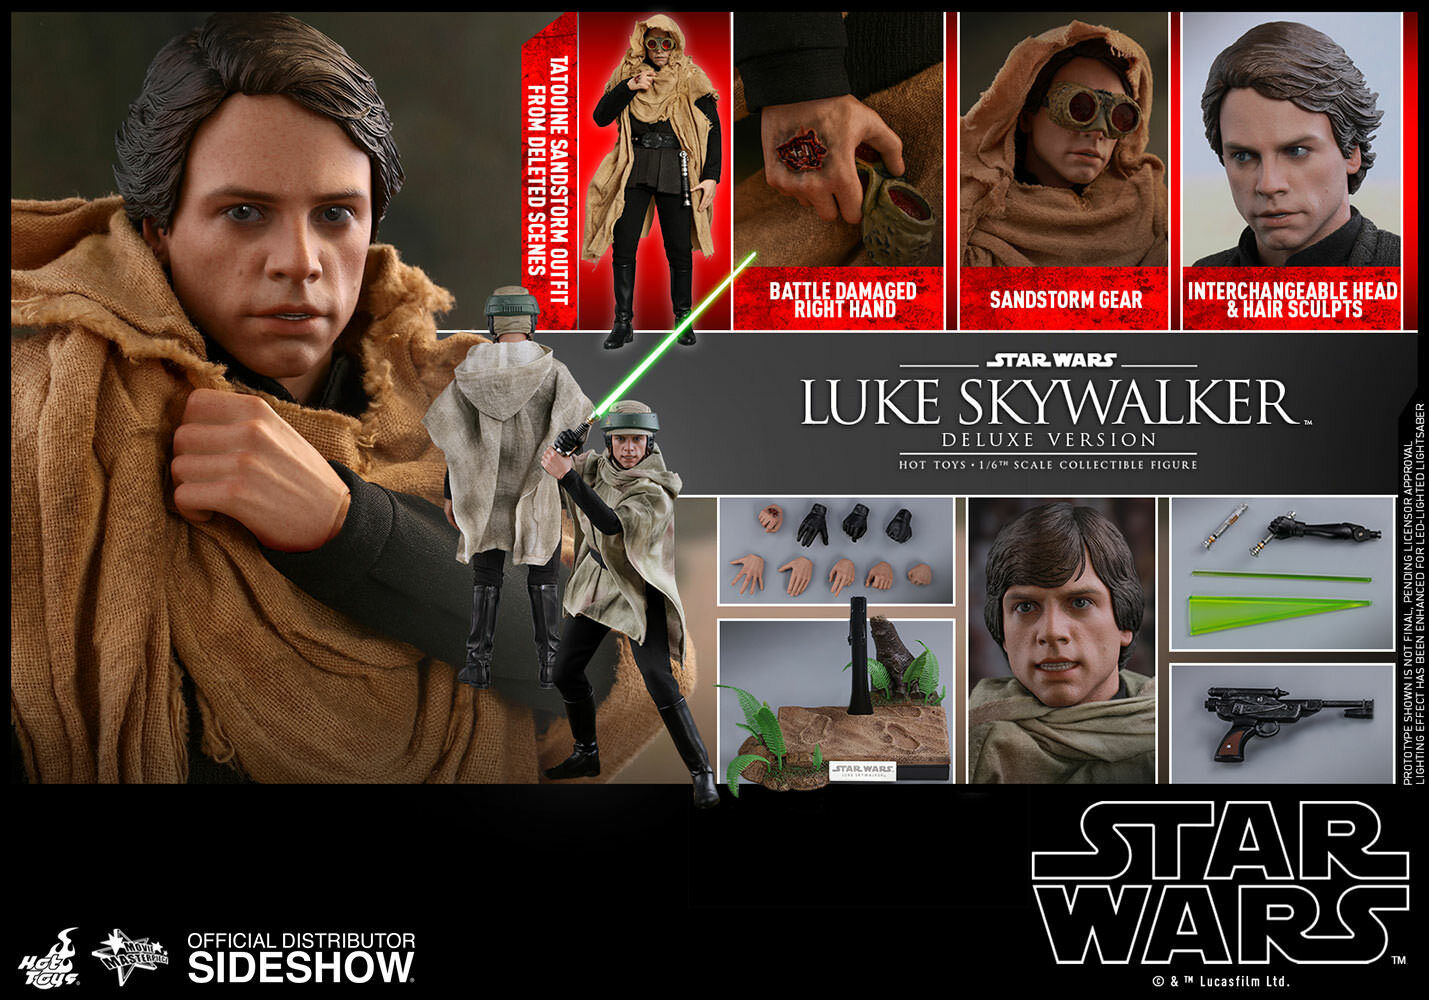 Hot Toys Star Wars Return of the Jedi LUKE SKYWALKER 1 6th Deluxe Figure MMS517